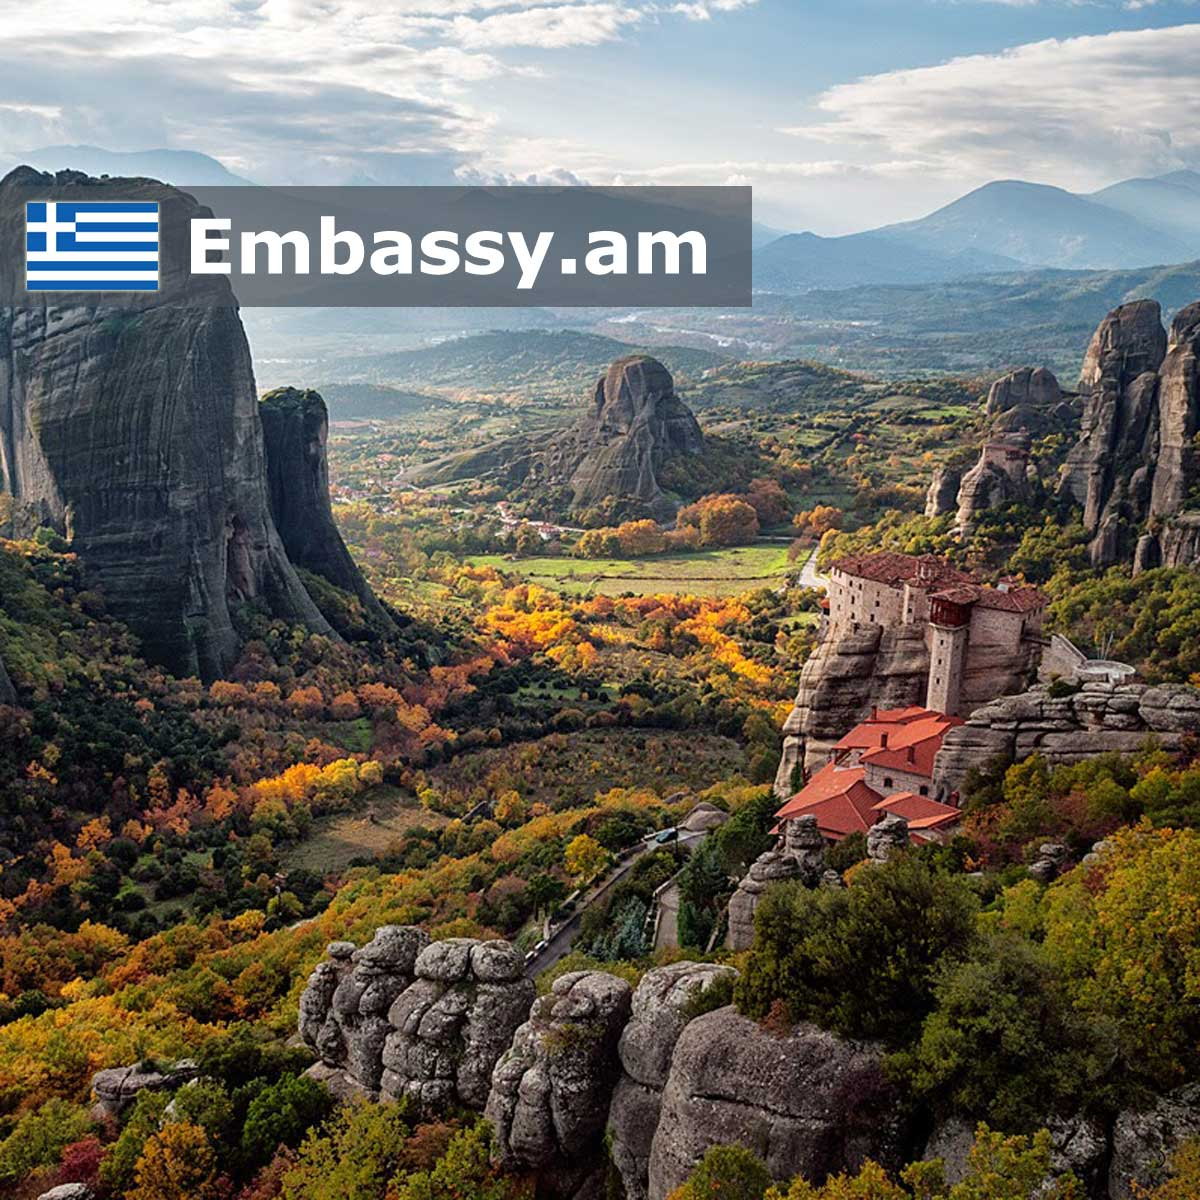 Kalabaka - Hotels in Greece - Embassy.am